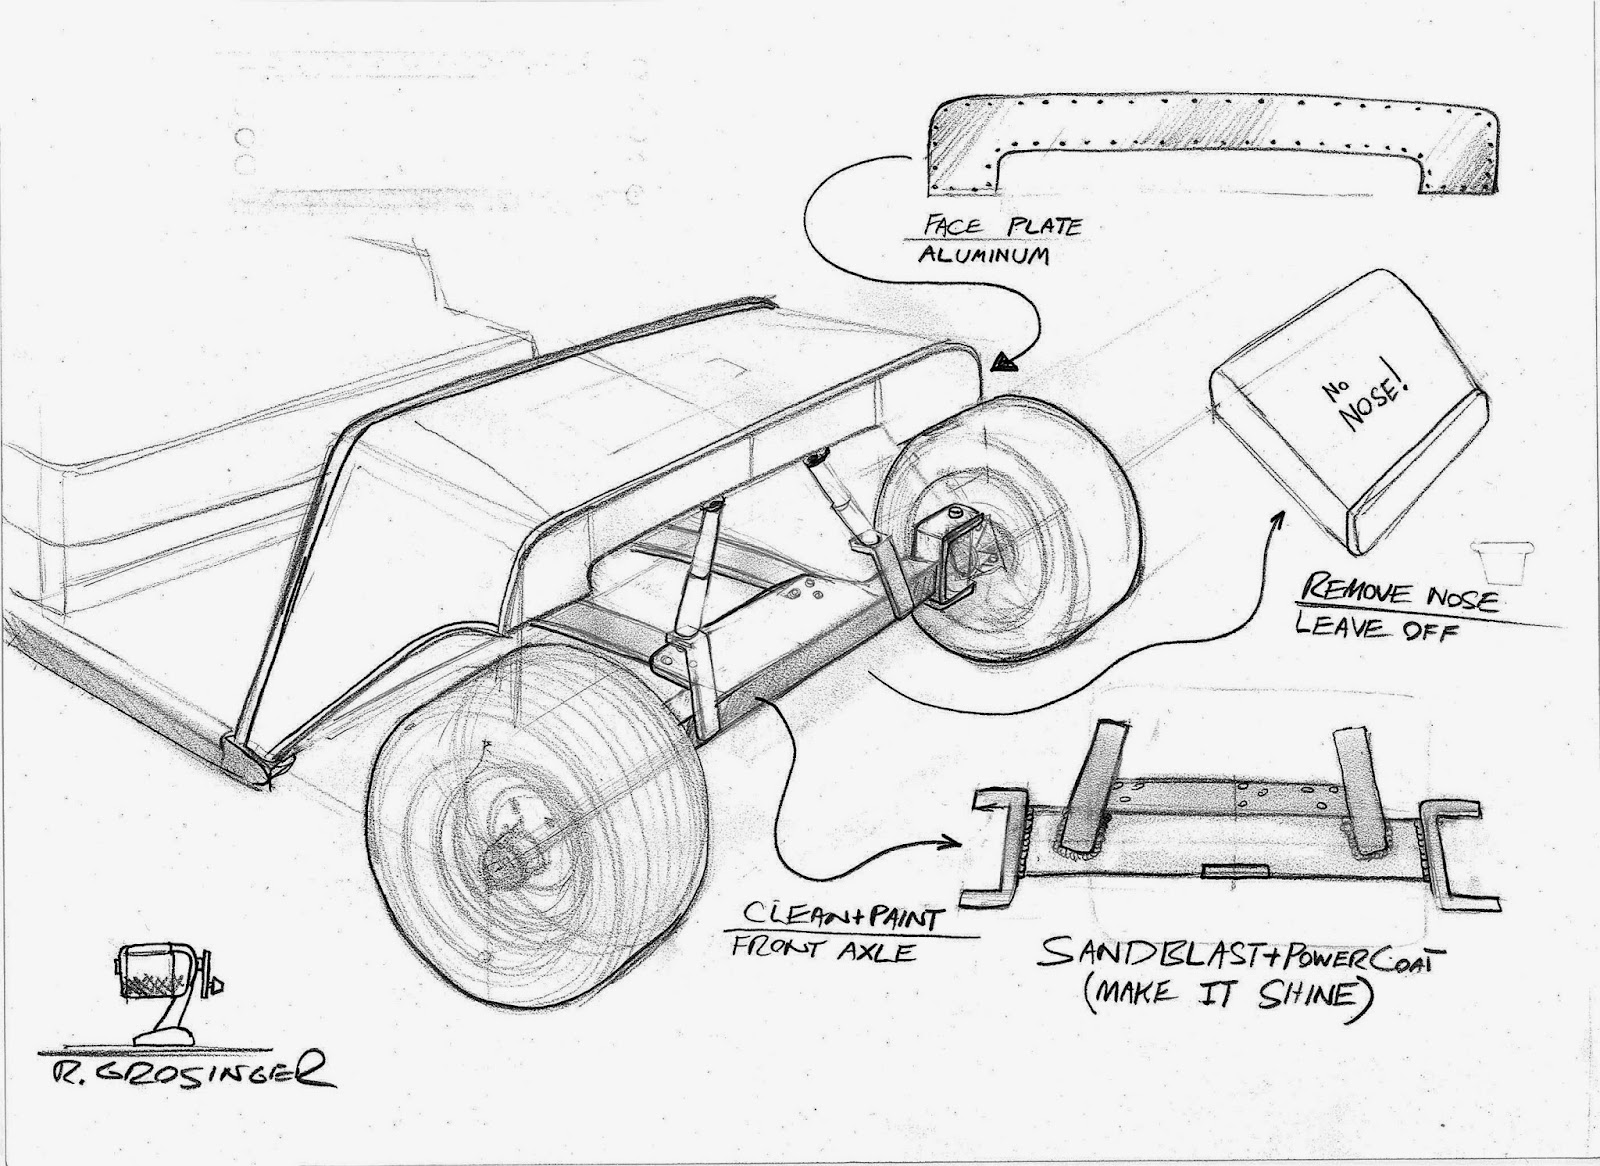 Ron Grosinger S Vehicle Design Electric Wheelie Golf Cart